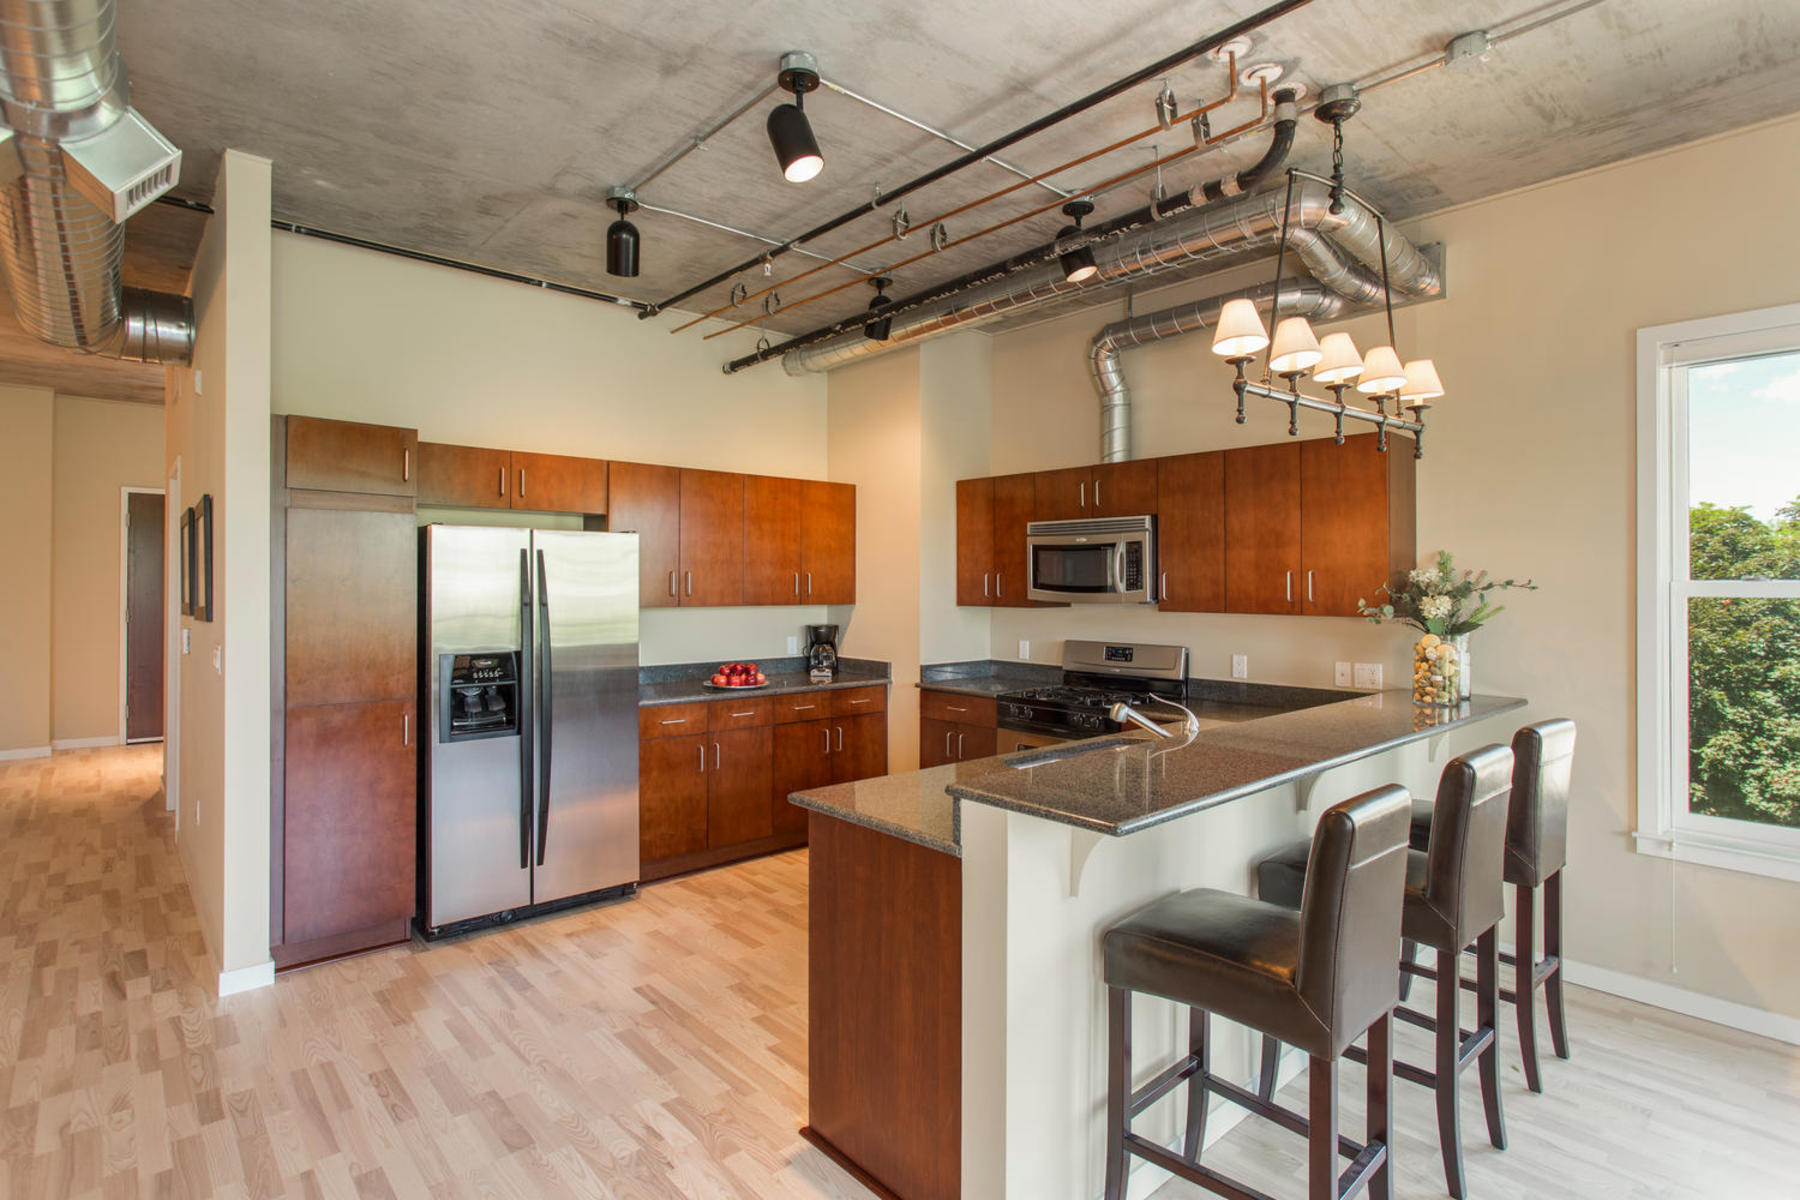 Additional photo for property listing at Views From The Top 3701 Arapahoe Ave C-210 Boulder, Colorado 80303 United States